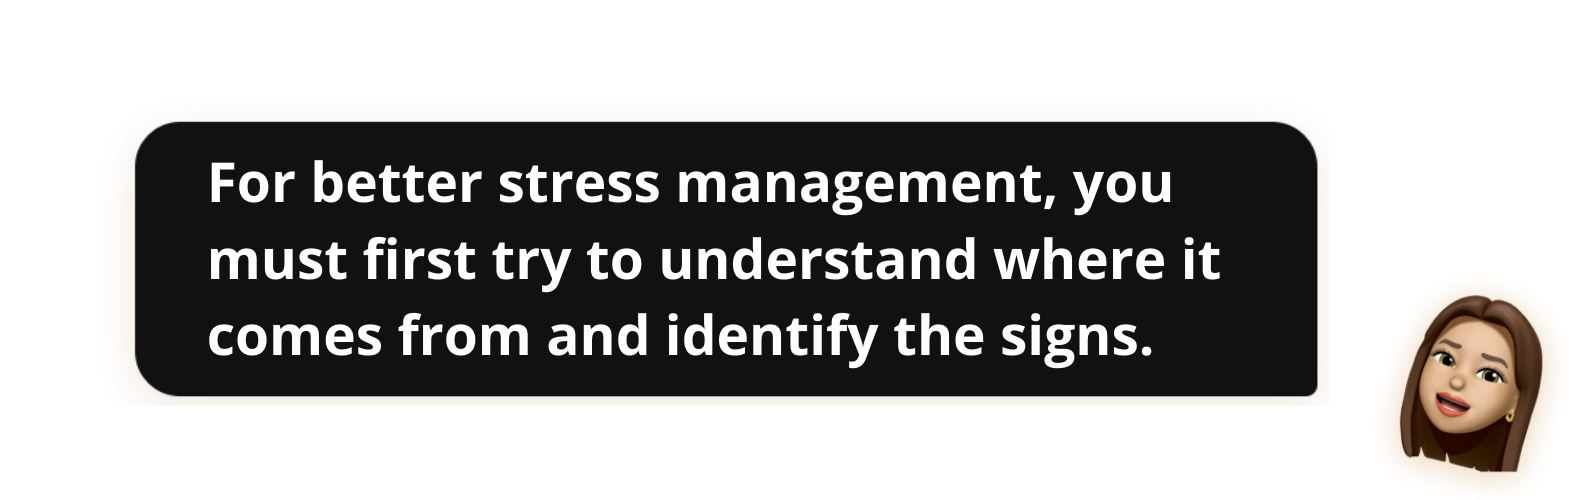 For better stress management, you must first try to understand where it comes from and identify the signs - Popwork